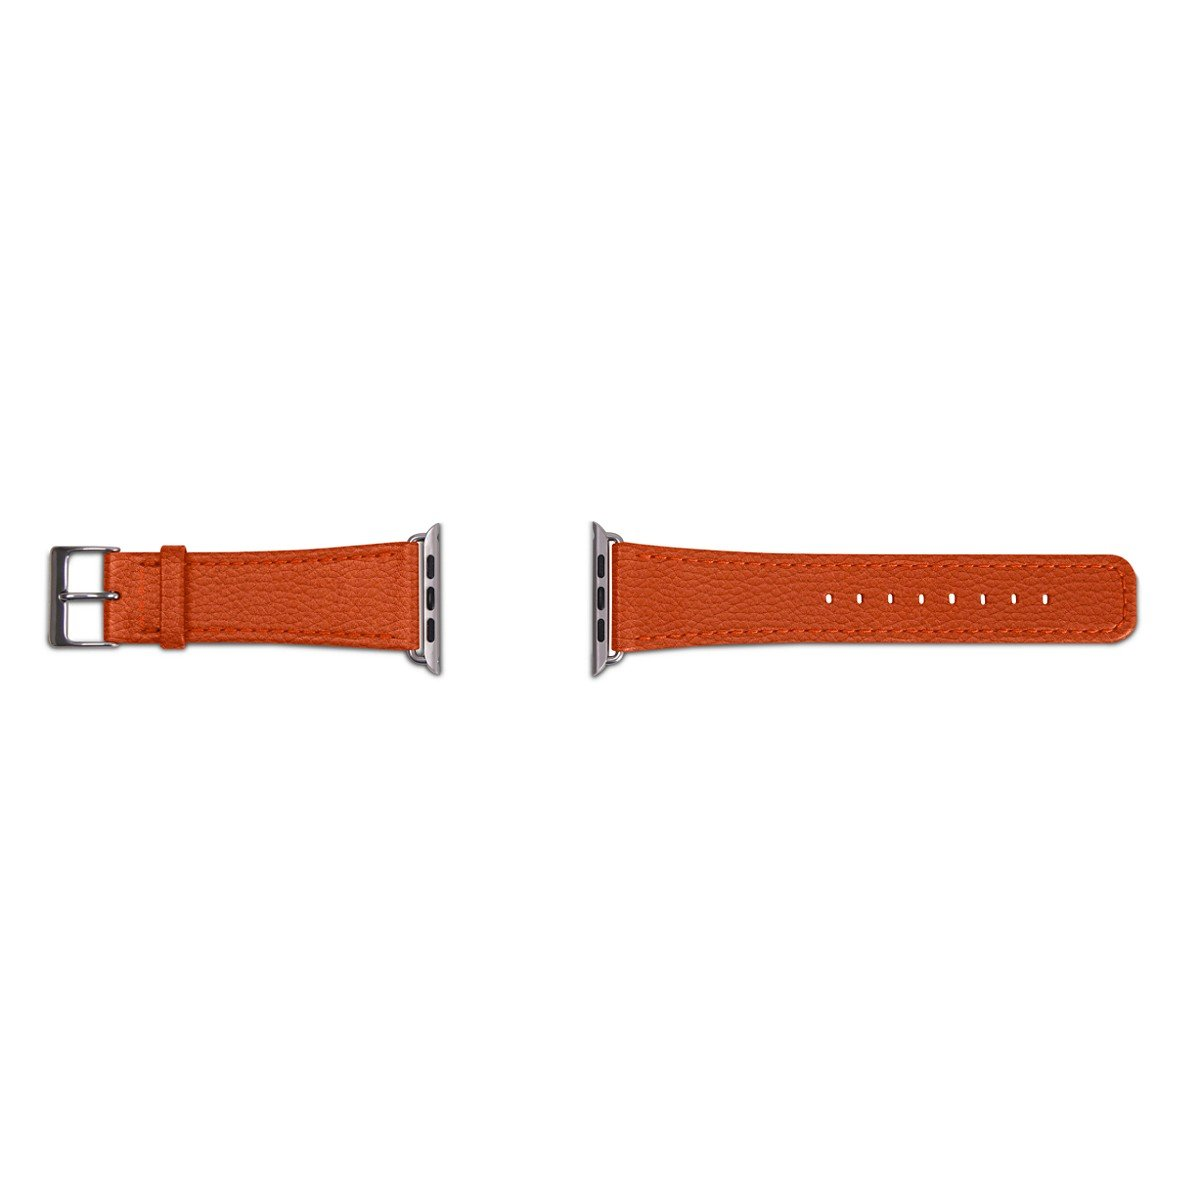 Lucrin - Apple Watch Band 42 mm - Classic - Orange - Granulated Leather by Lucrin (Image #4)